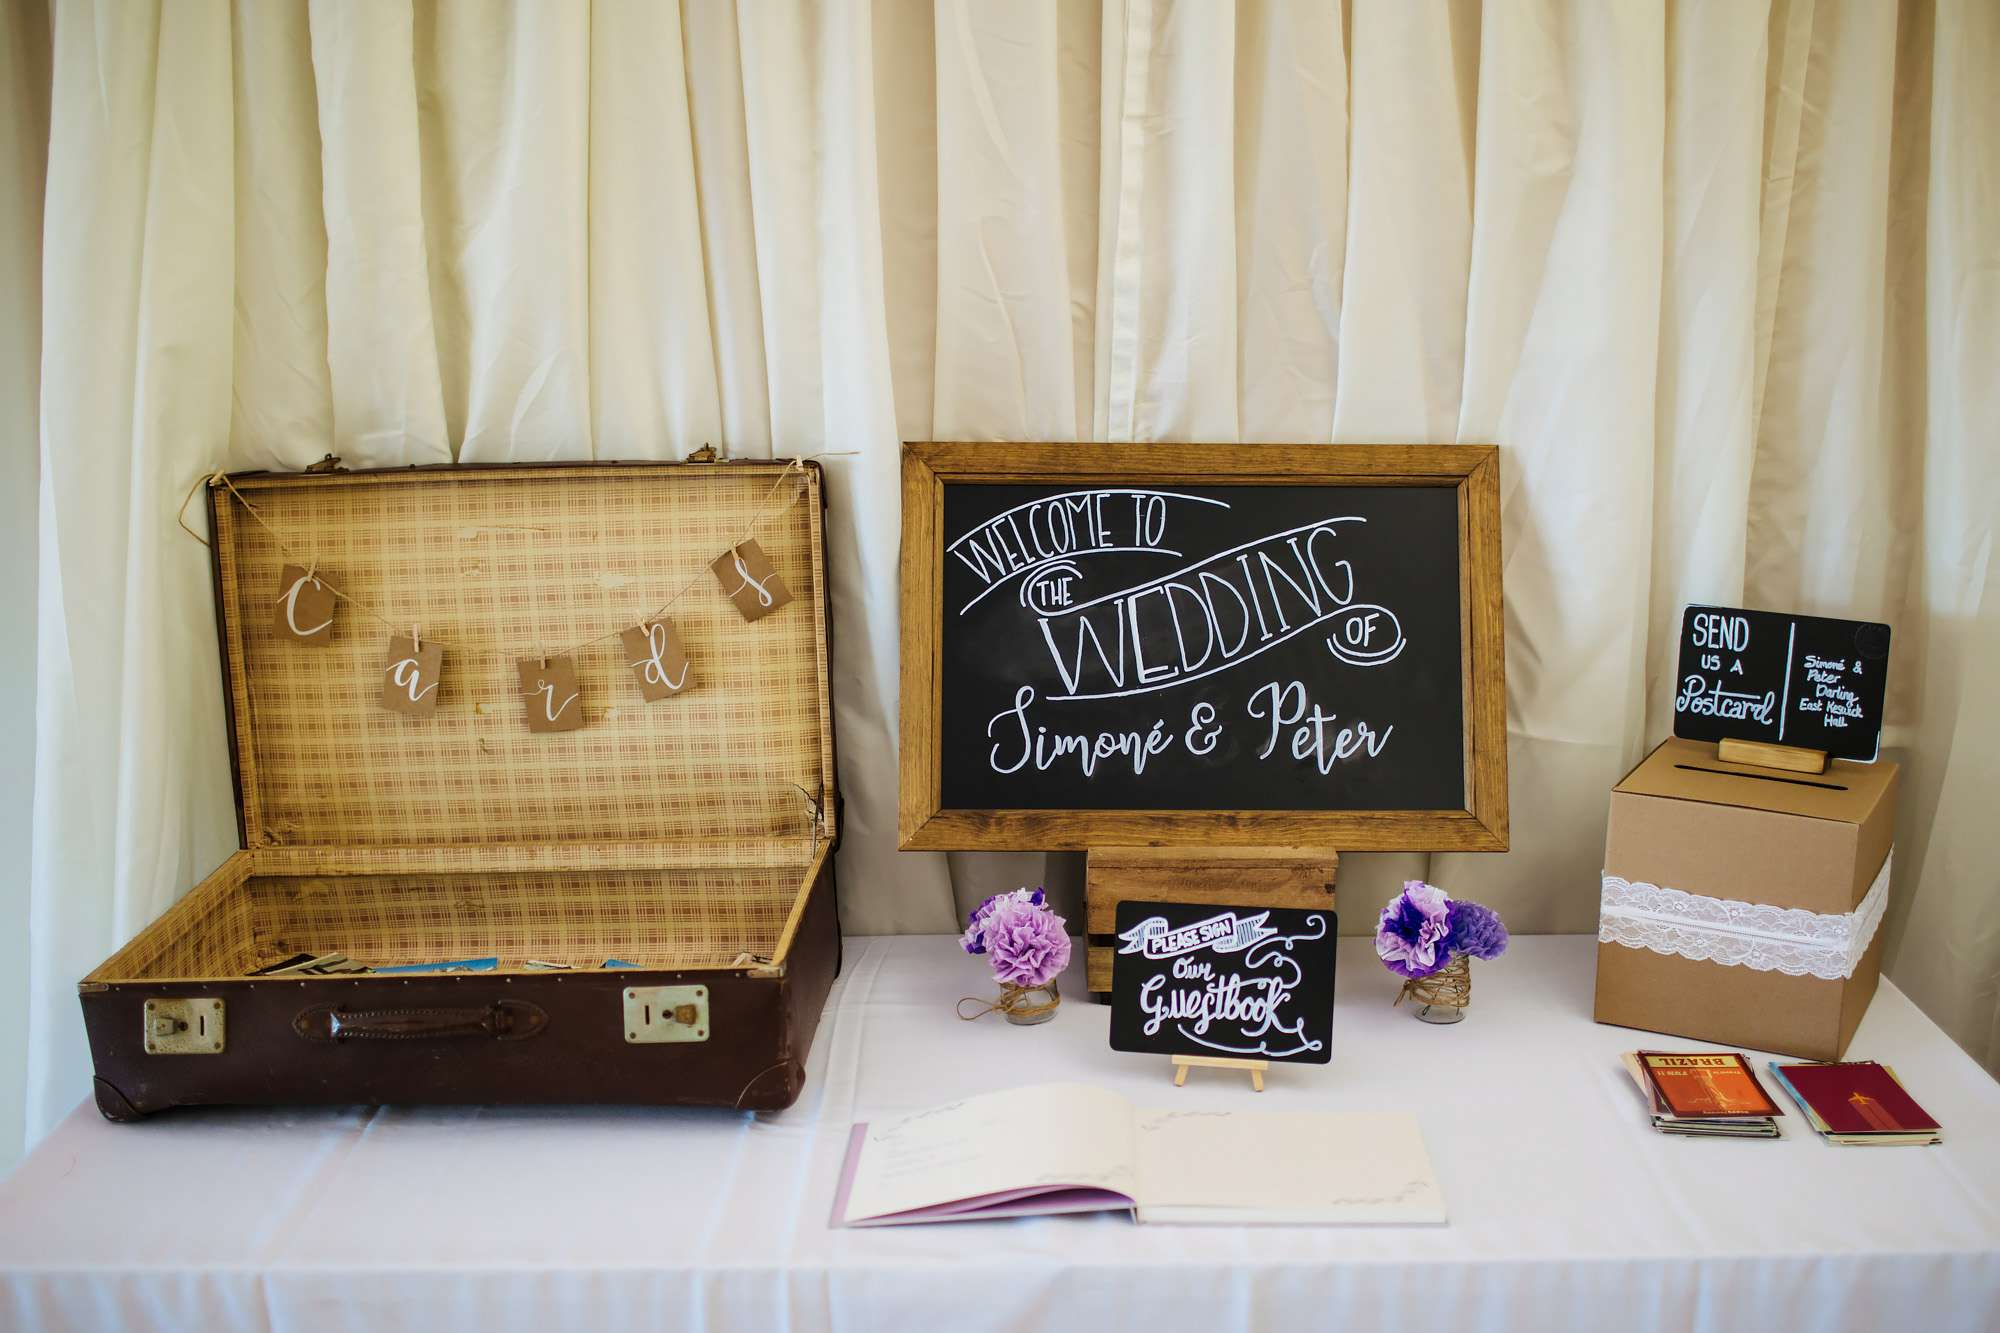 Wedding details and cards